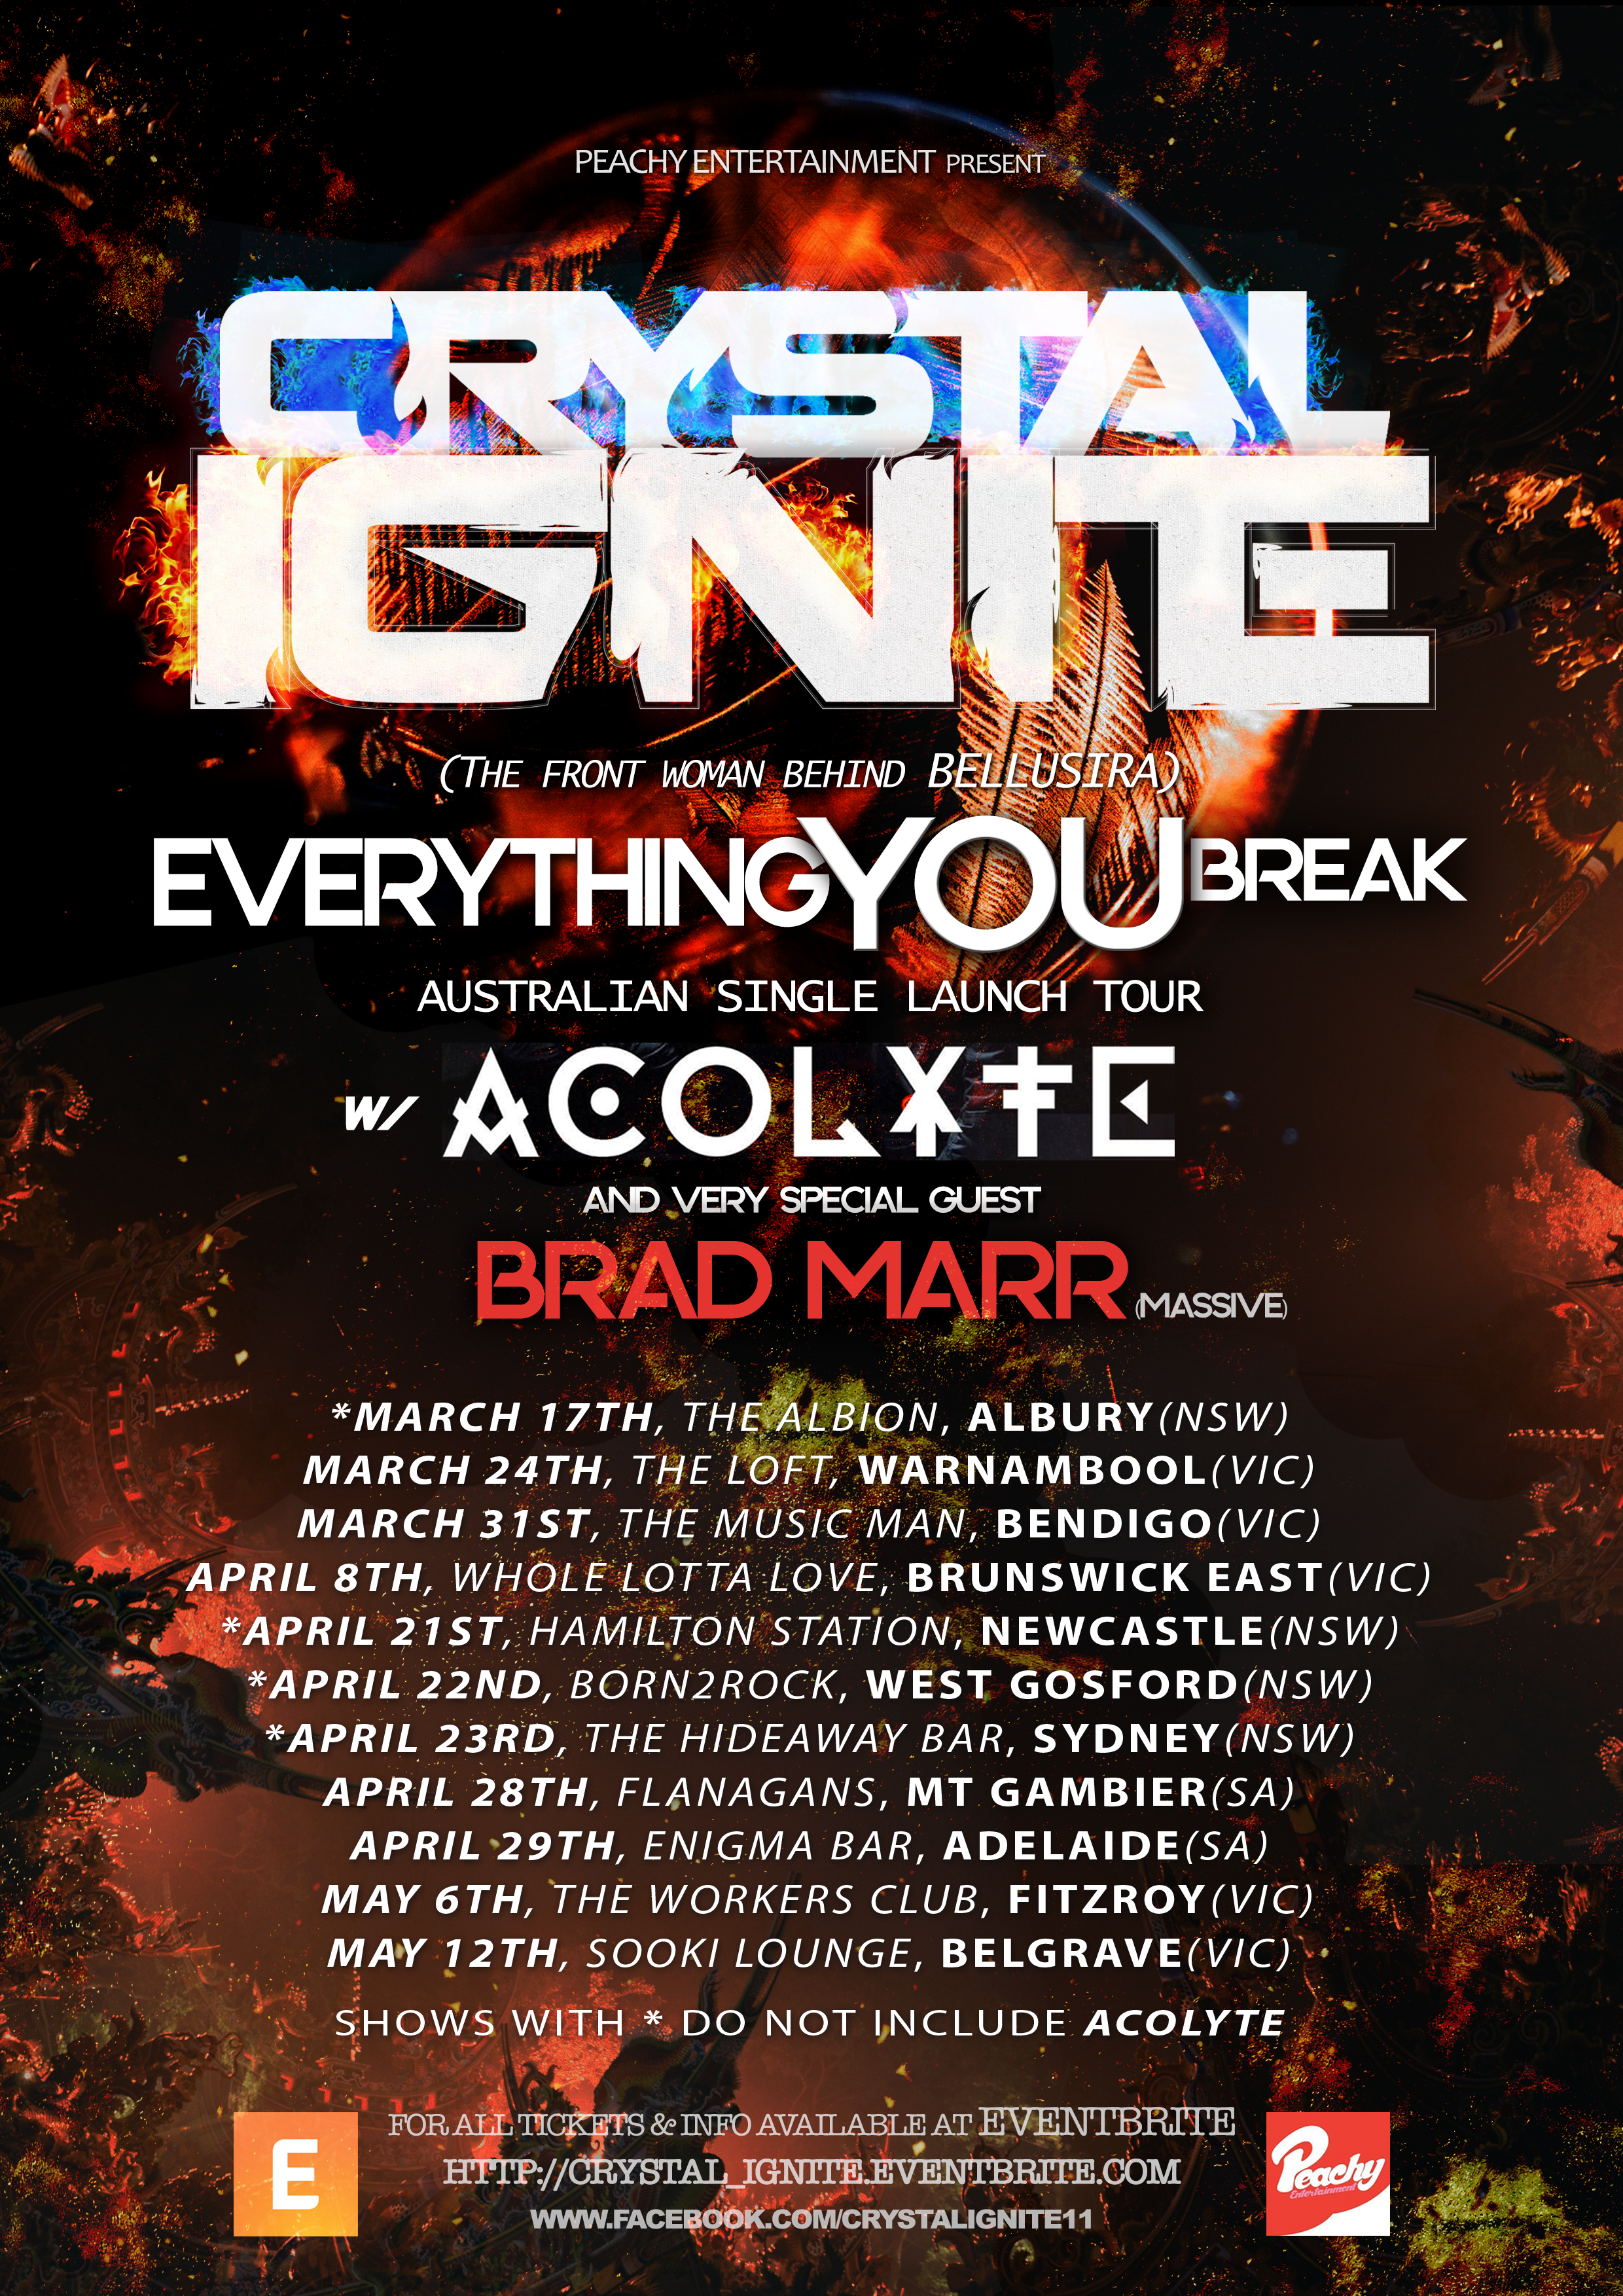 2-FULL-MAIN-EVERYTHING-YOU-BREAK-TOUR-POSTER-Recovered.png